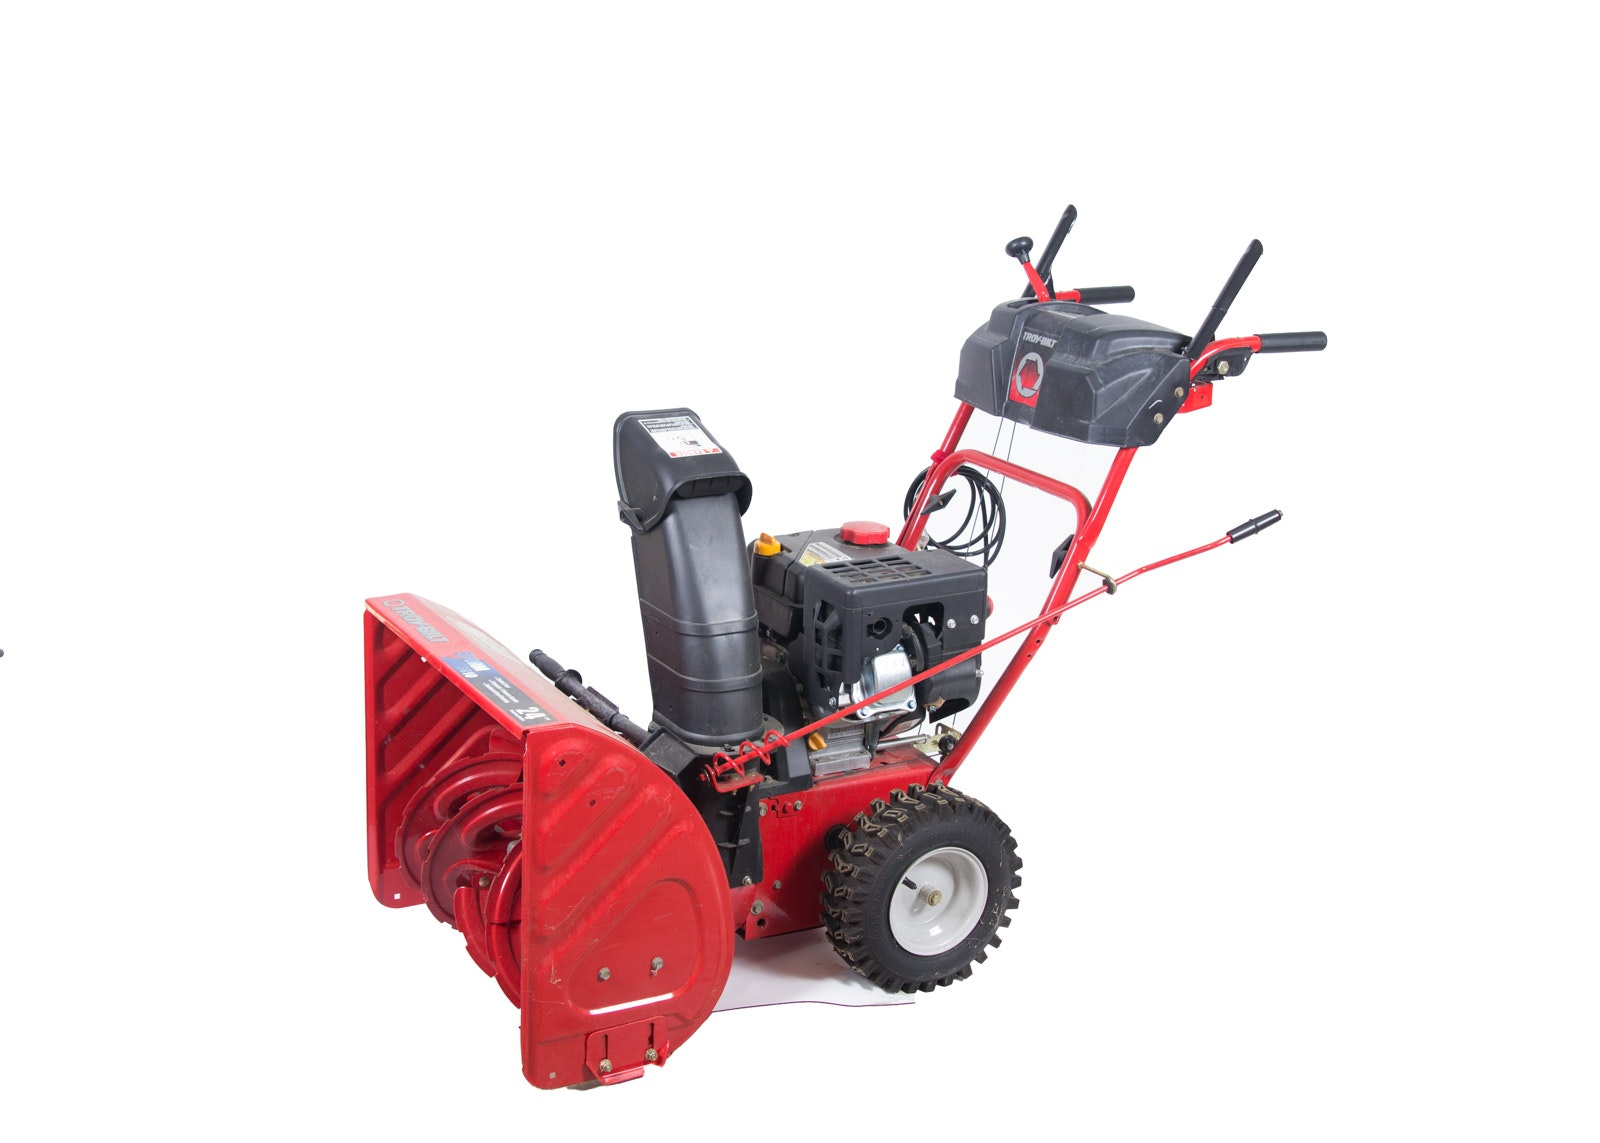 Troy-Bilt Storm 2410 Snowblower